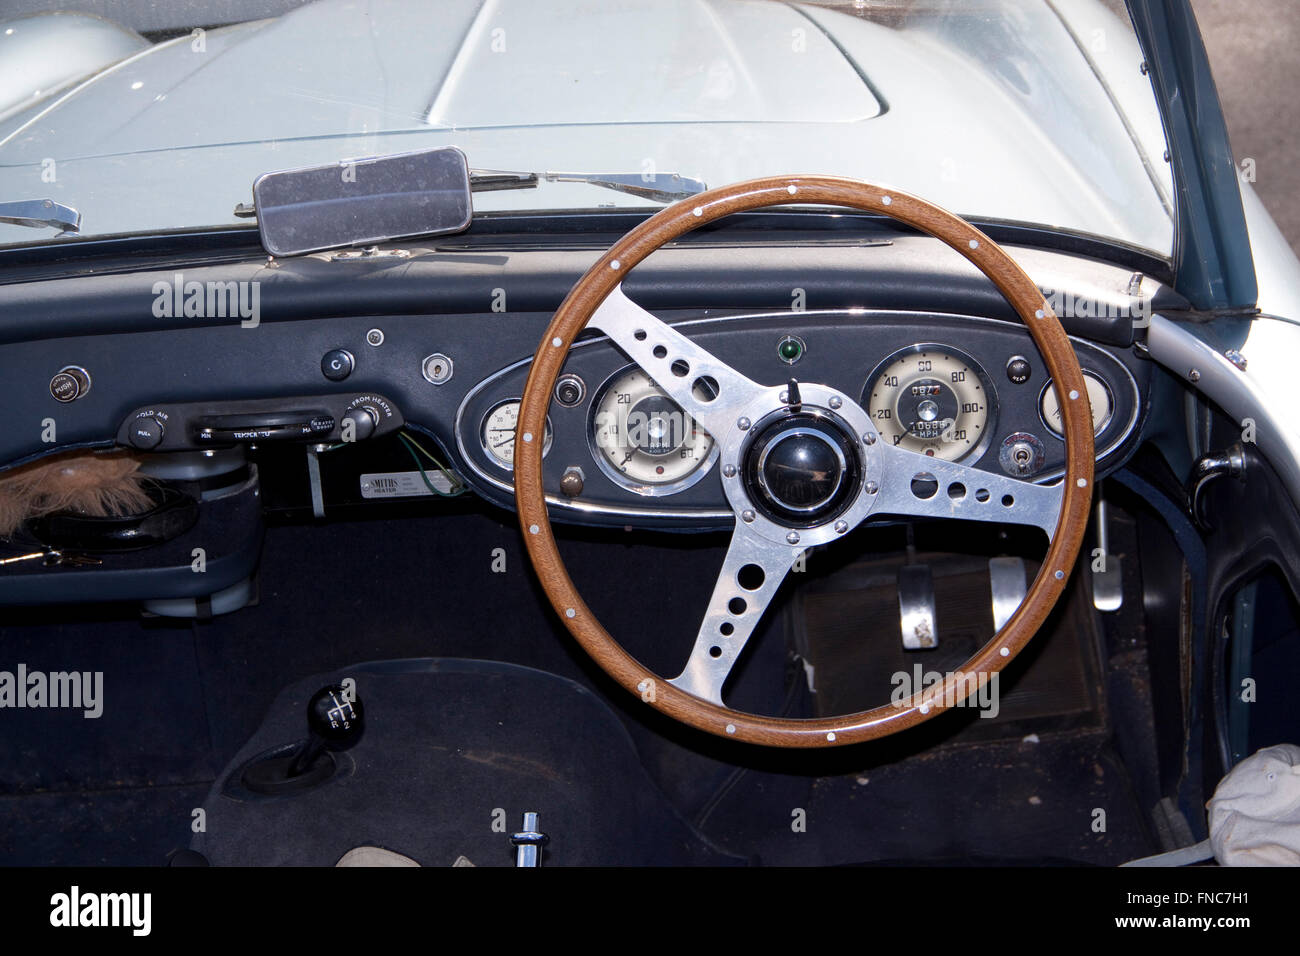 Wooden Steering Wheel And Cream Coloured Colored Instruments On The